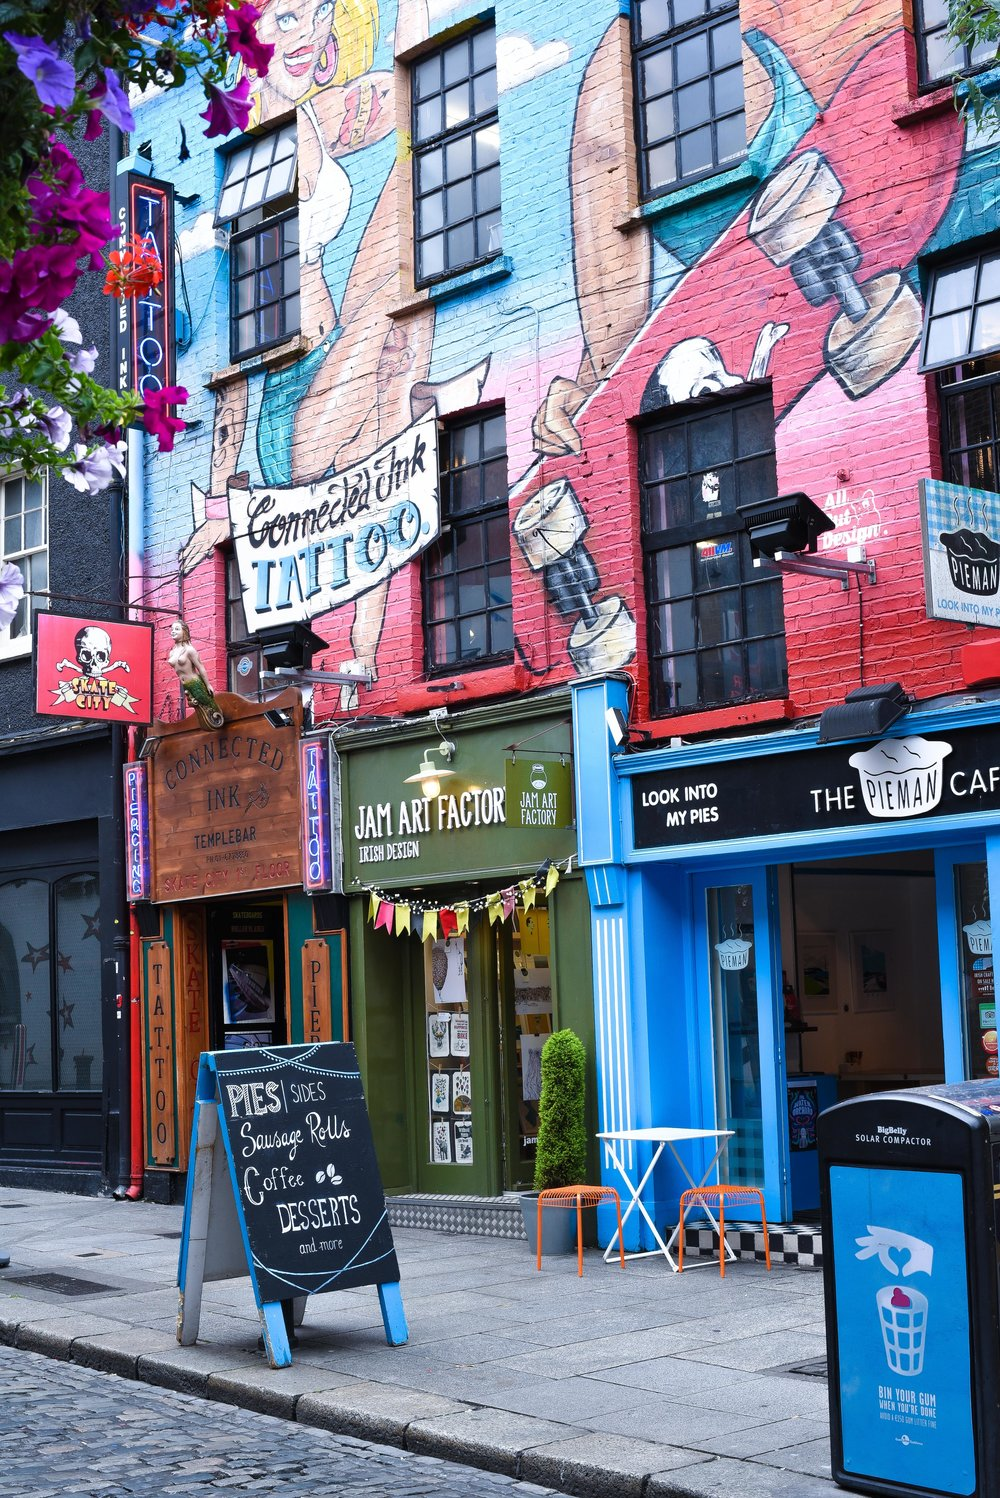 The colourful sights of Temple Bar – Dubbers eat your heart out.